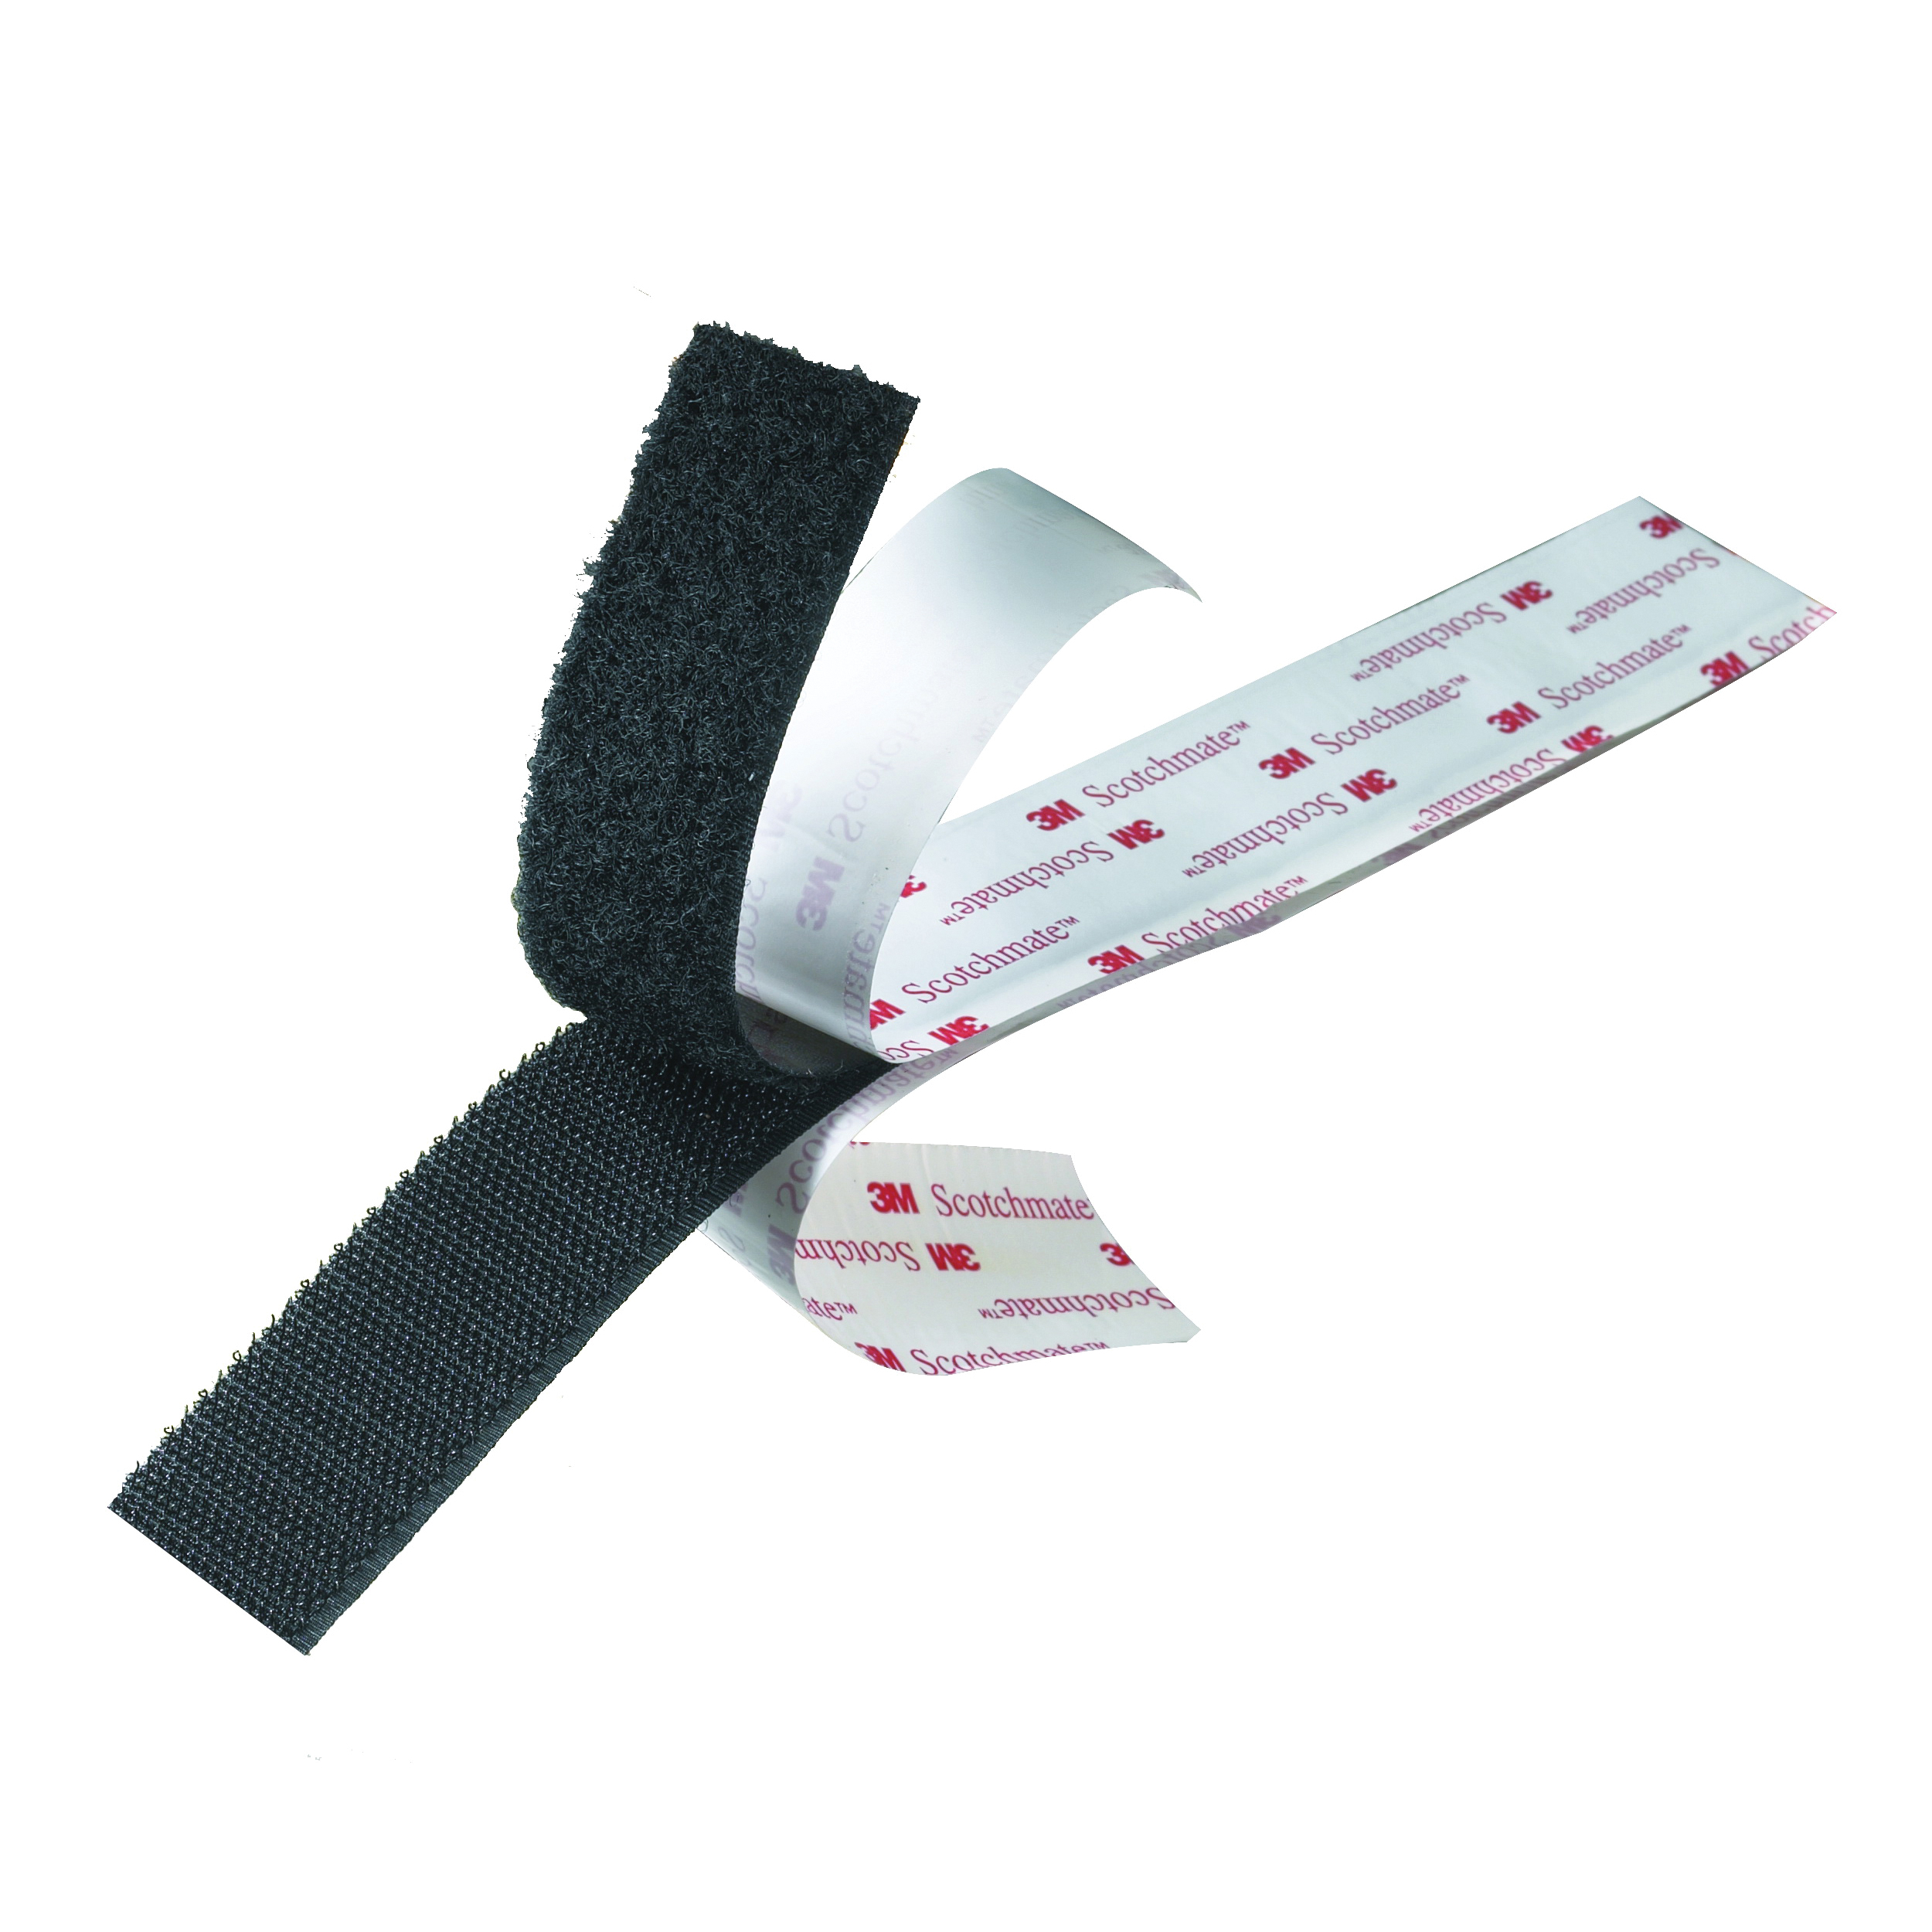 3M™ 021200-23806 Reclosable Hook Fastener Tape, 50 yd L x 1-1/2 in W, 0.15 in THK Engaged, Modified Rubber Adhesive, Woven Nylon Backing, White